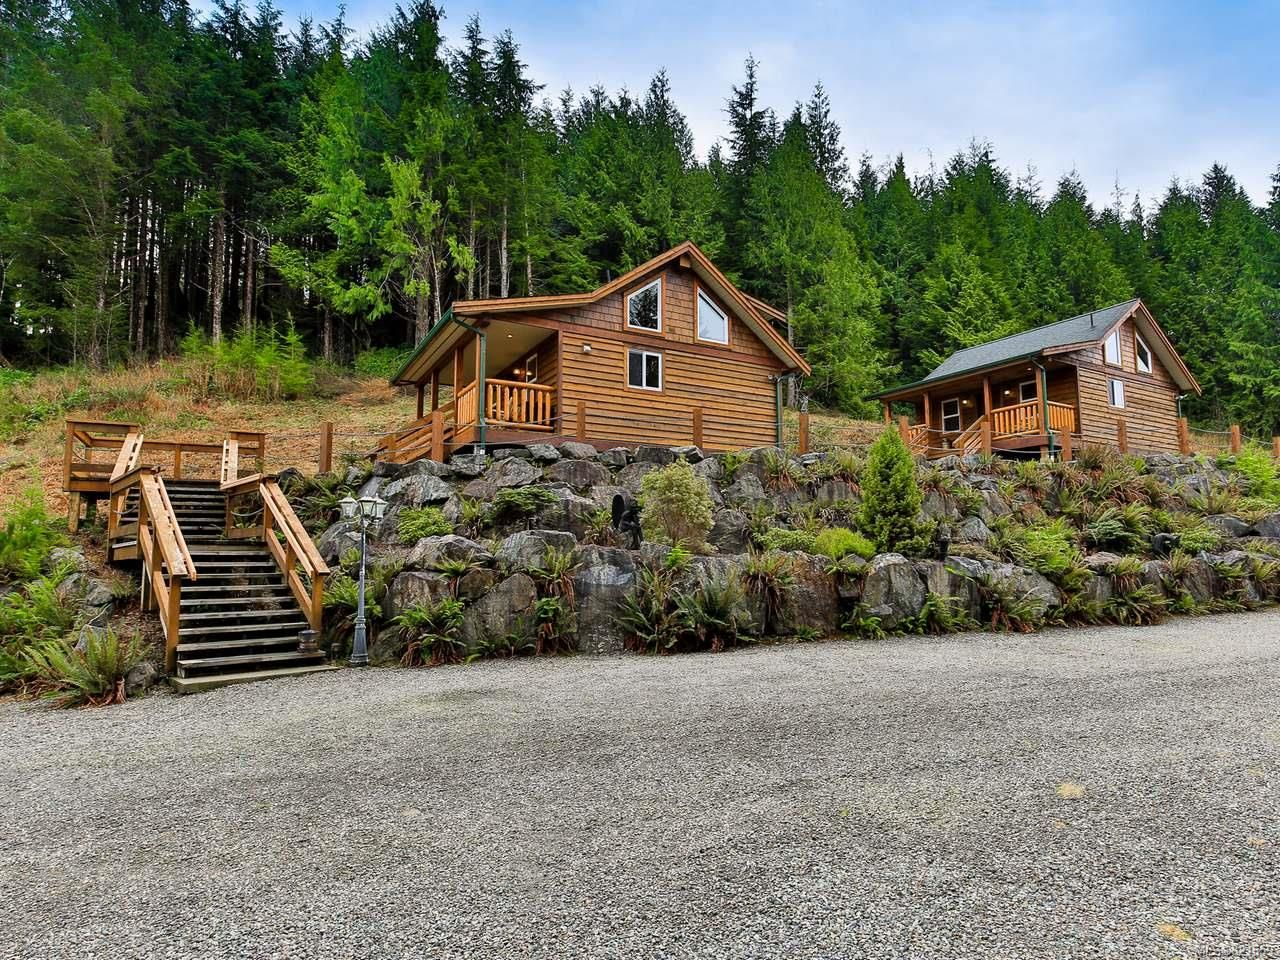 Photo 68: Photos: 1049 Helen Rd in UCLUELET: PA Ucluelet House for sale (Port Alberni)  : MLS®# 821659